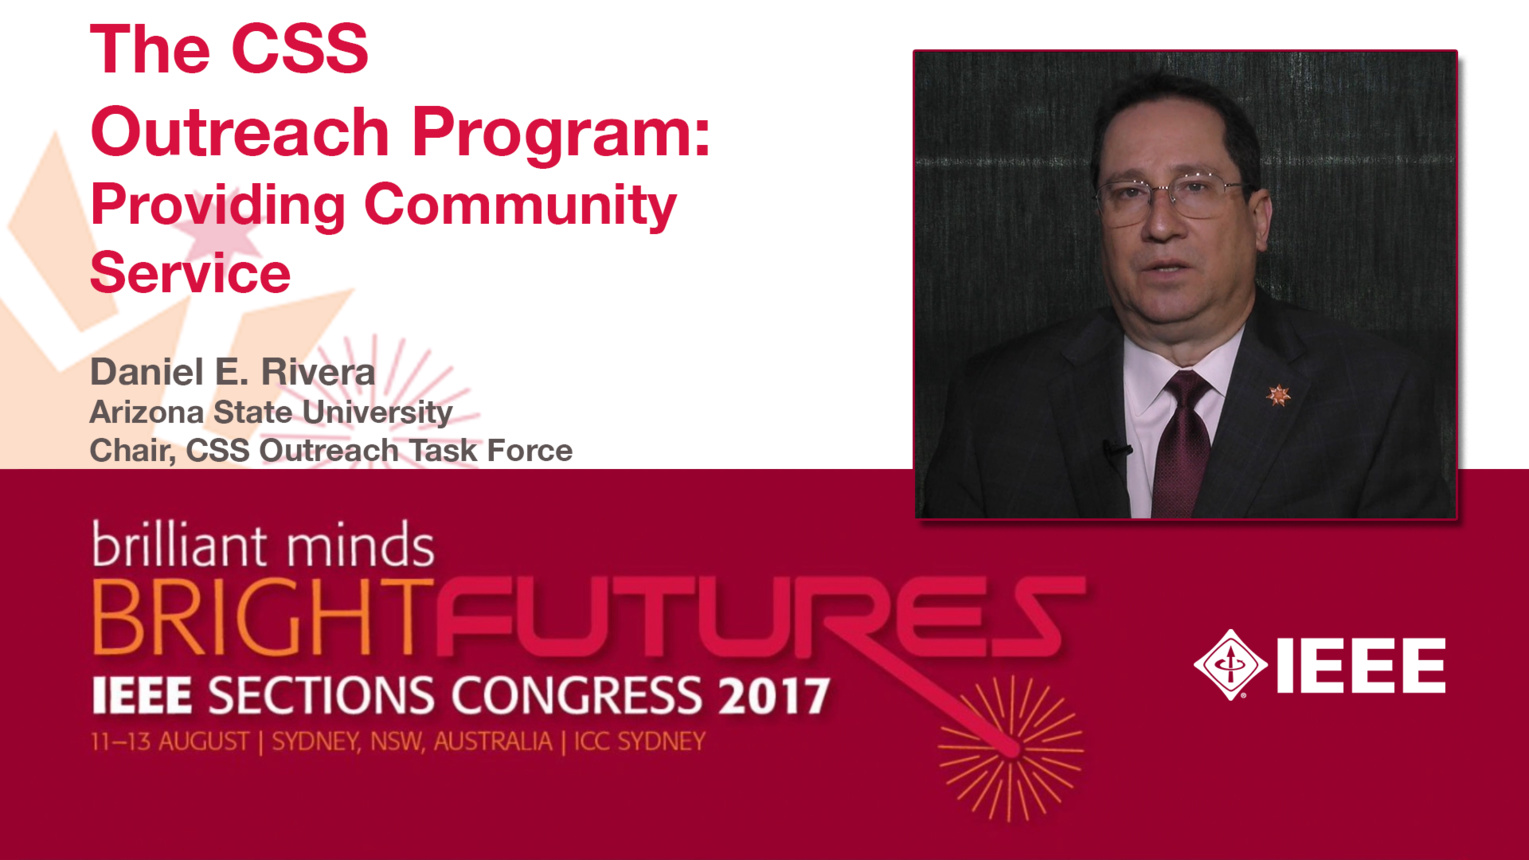 Daniel E. Rivera: The CSS Outreach Program: Providing Community Service - Studio Tech Talks: Sections Congress 2017